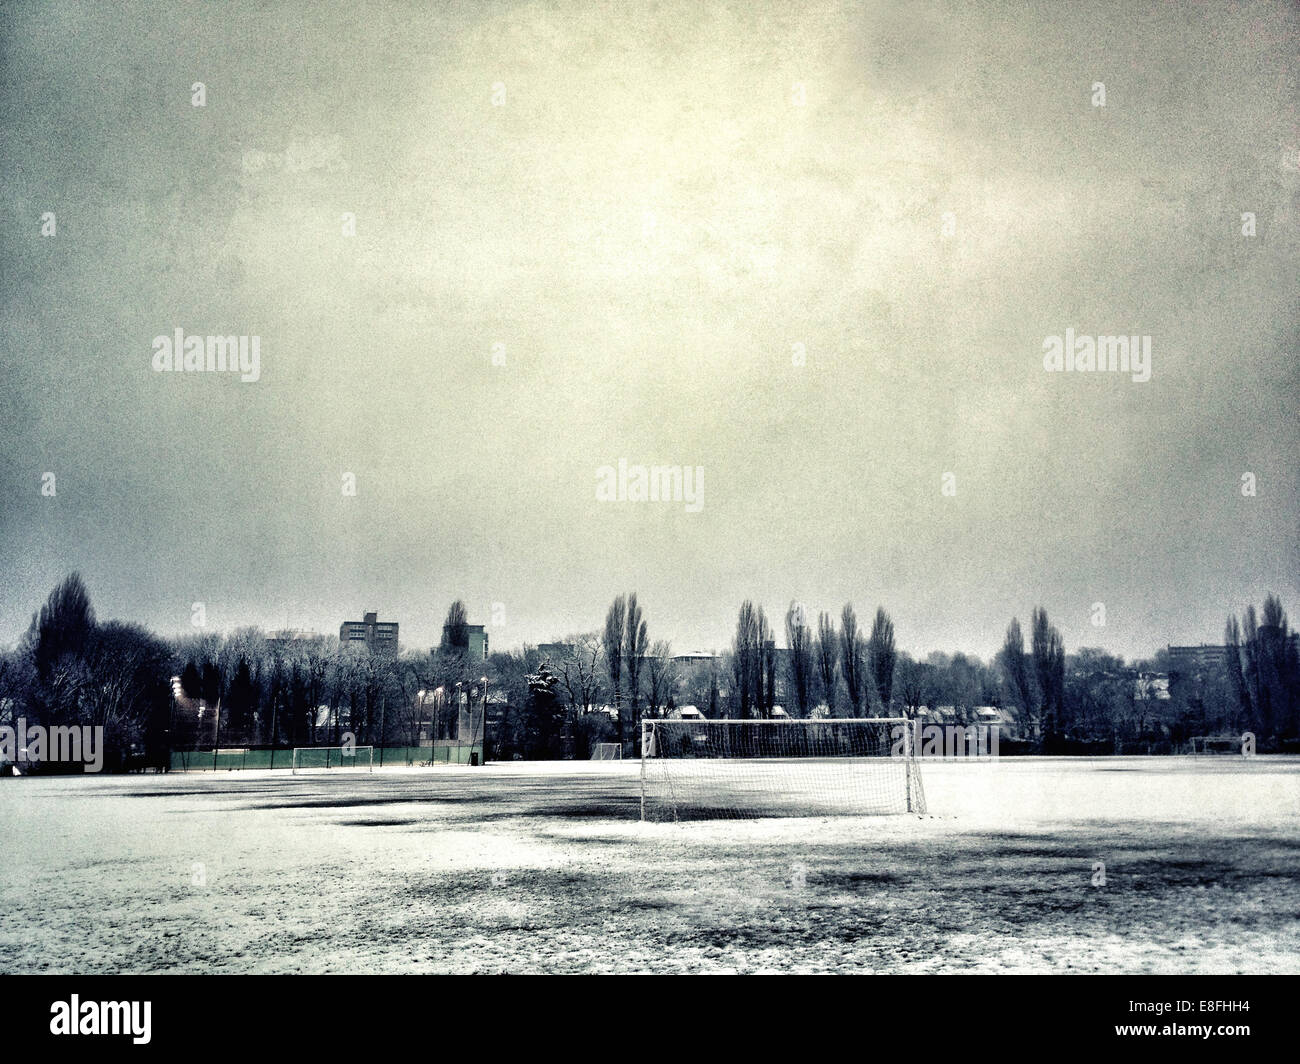 Londres, Reino Unido, London Borough of Haringey, Crouch End, campo de fútbol cubierto de nieve Imagen De Stock